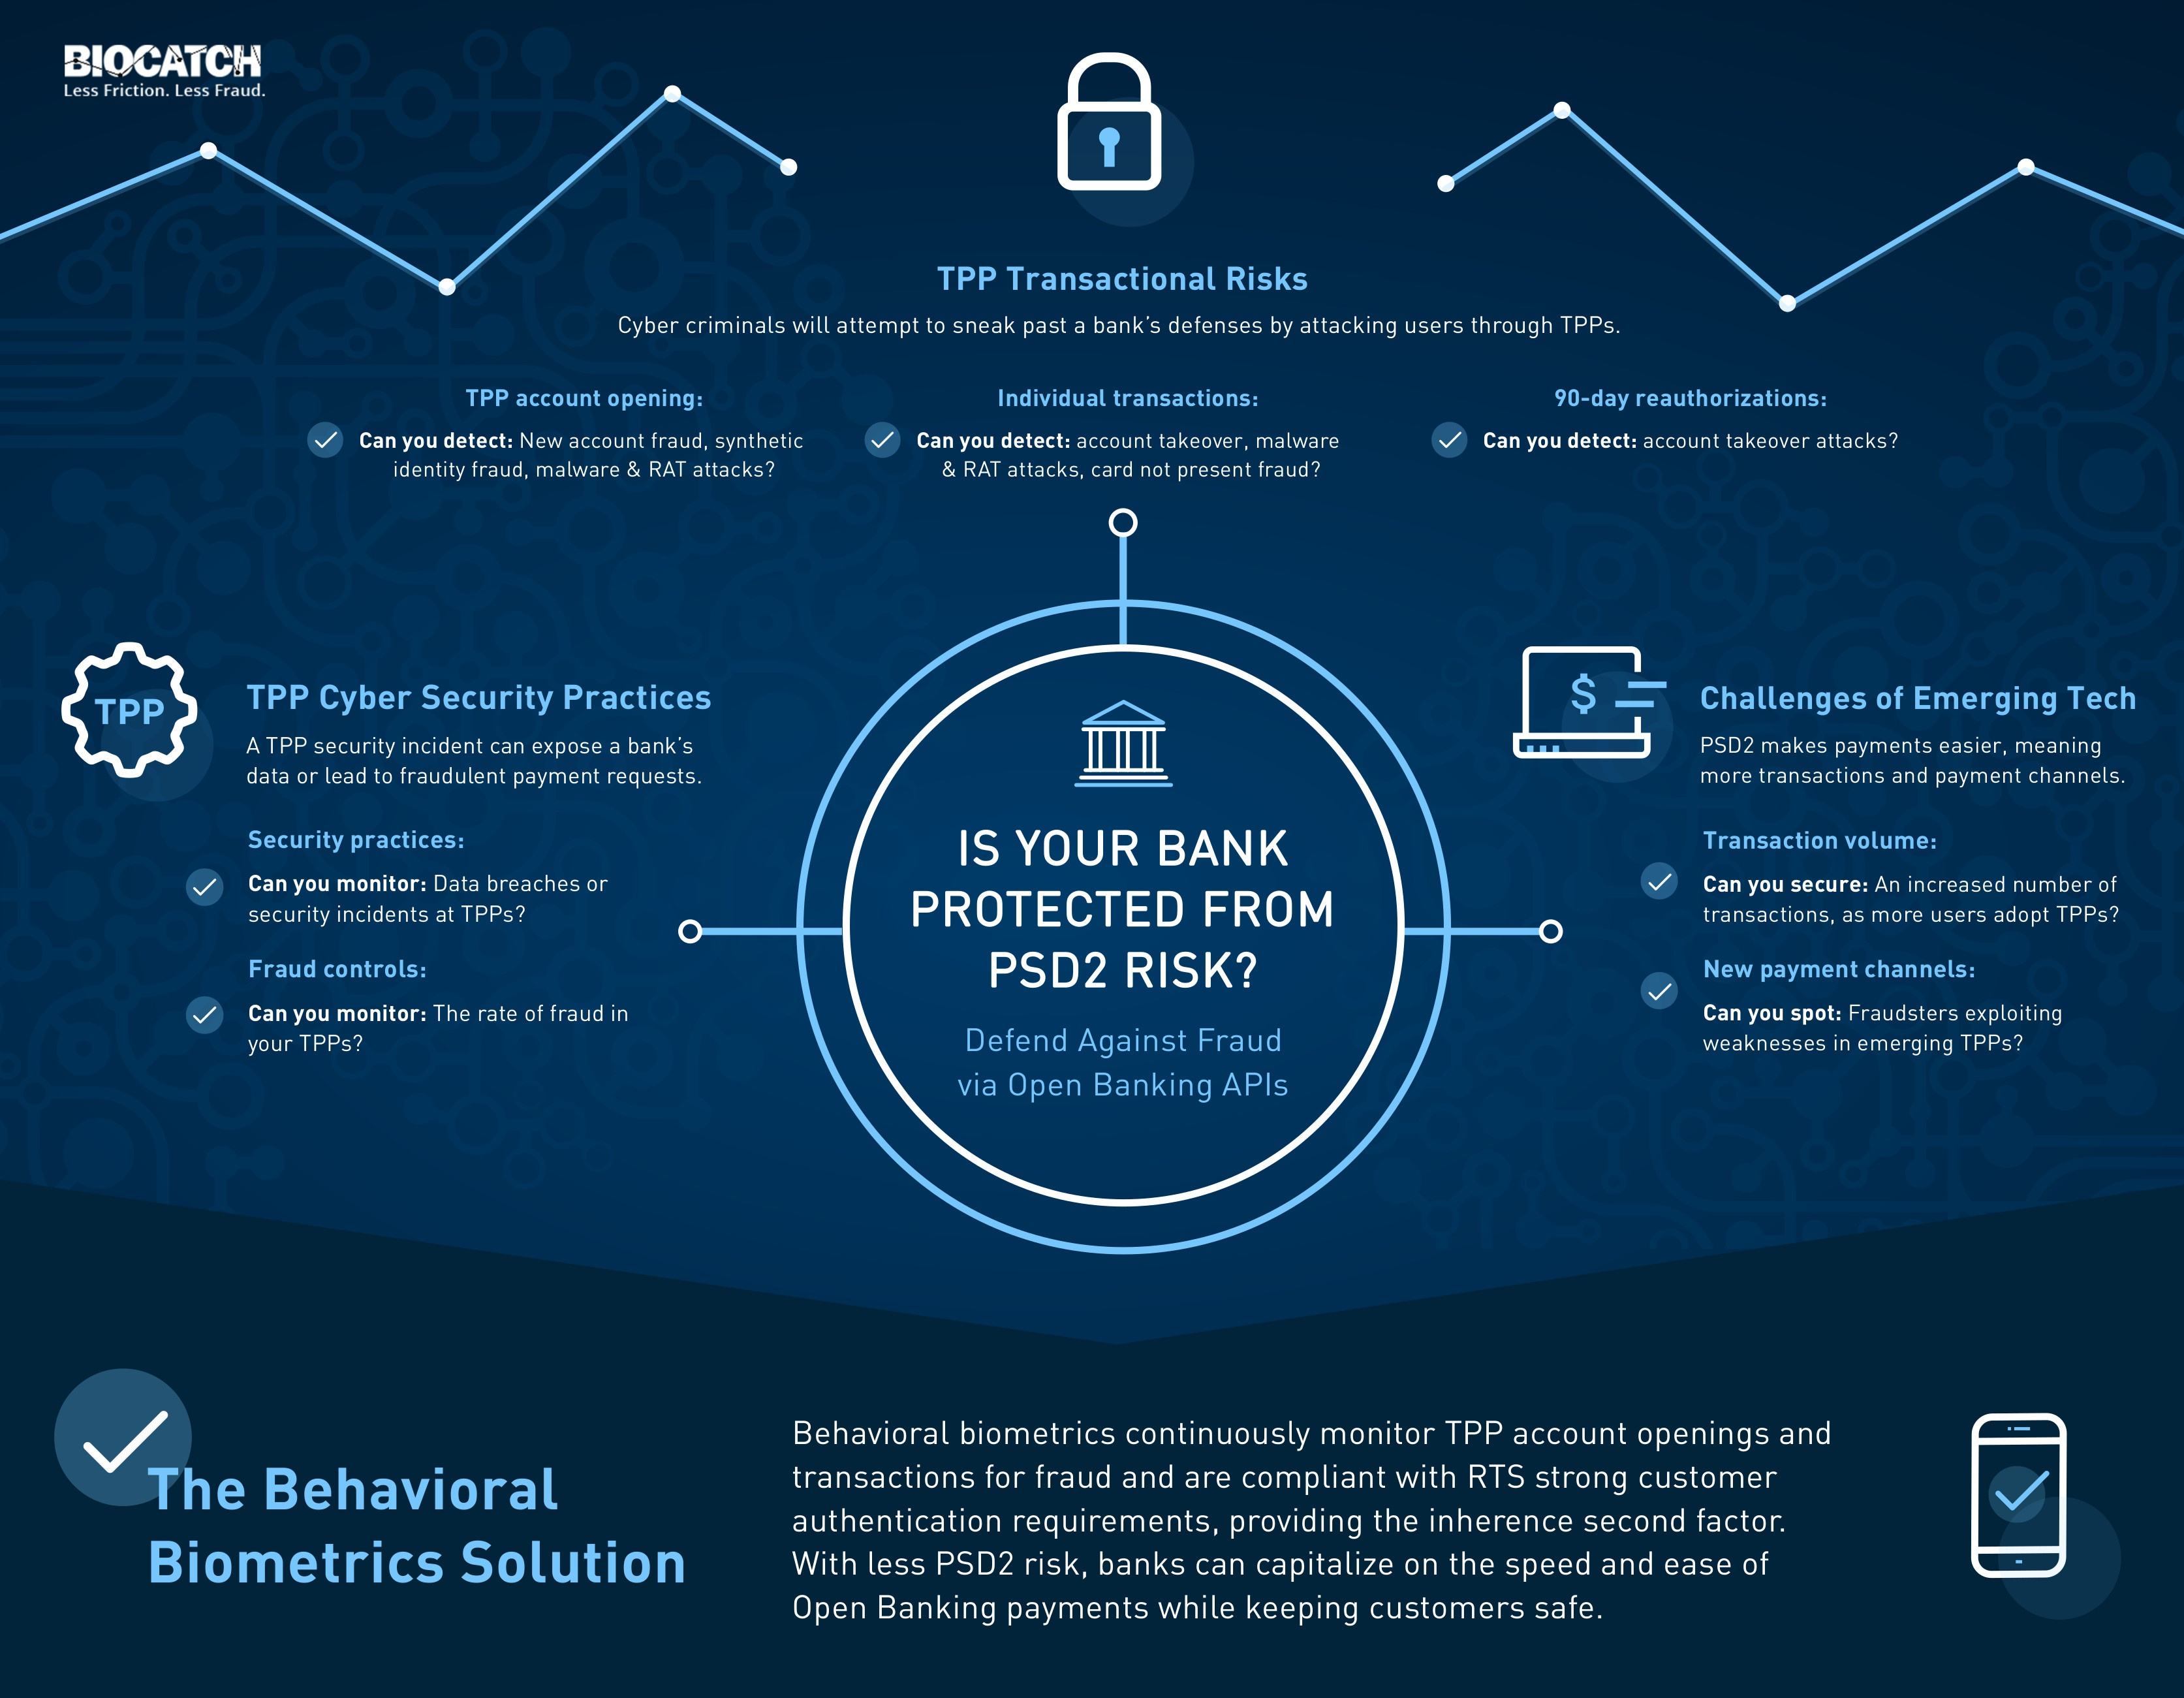 How to Defend Against Fraud via Open Banking APIs